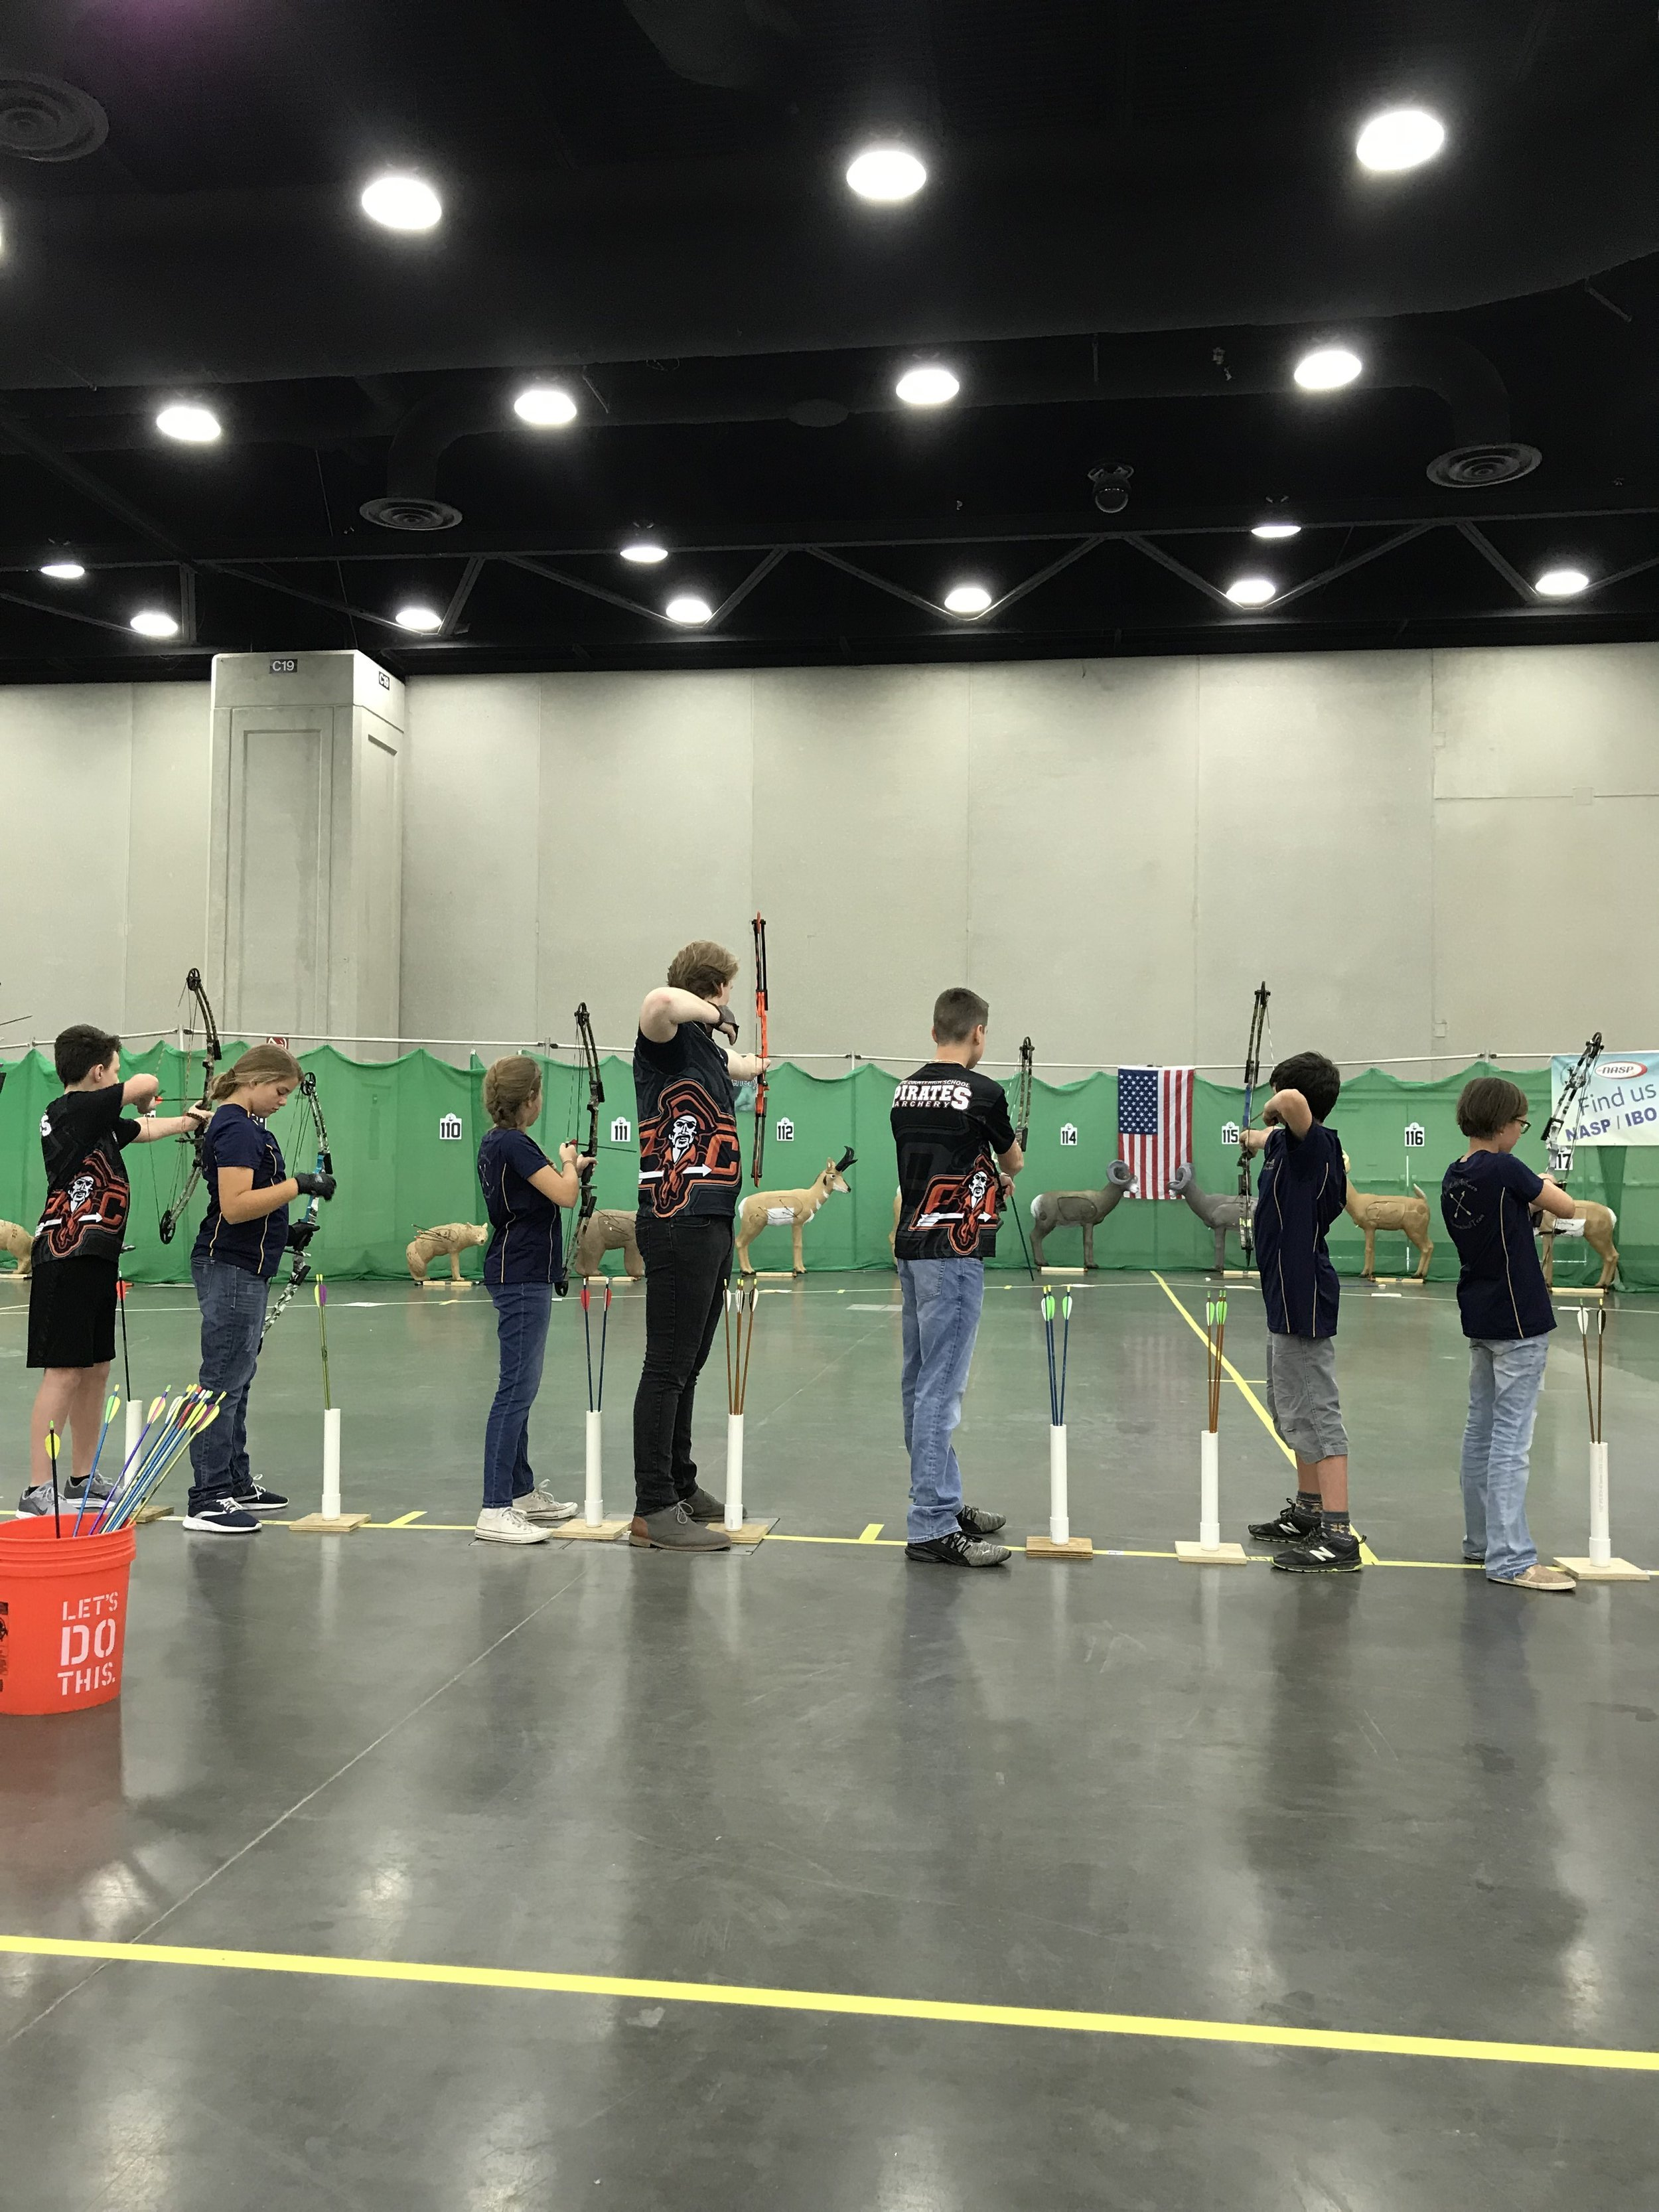 The Platte County archery team went to Louisville, Ky., earlier this month to compete in the NASP Eastern Nationals. Archers from Compass Elementary, Platte County High School, Platte County Middle School all took part in the event.